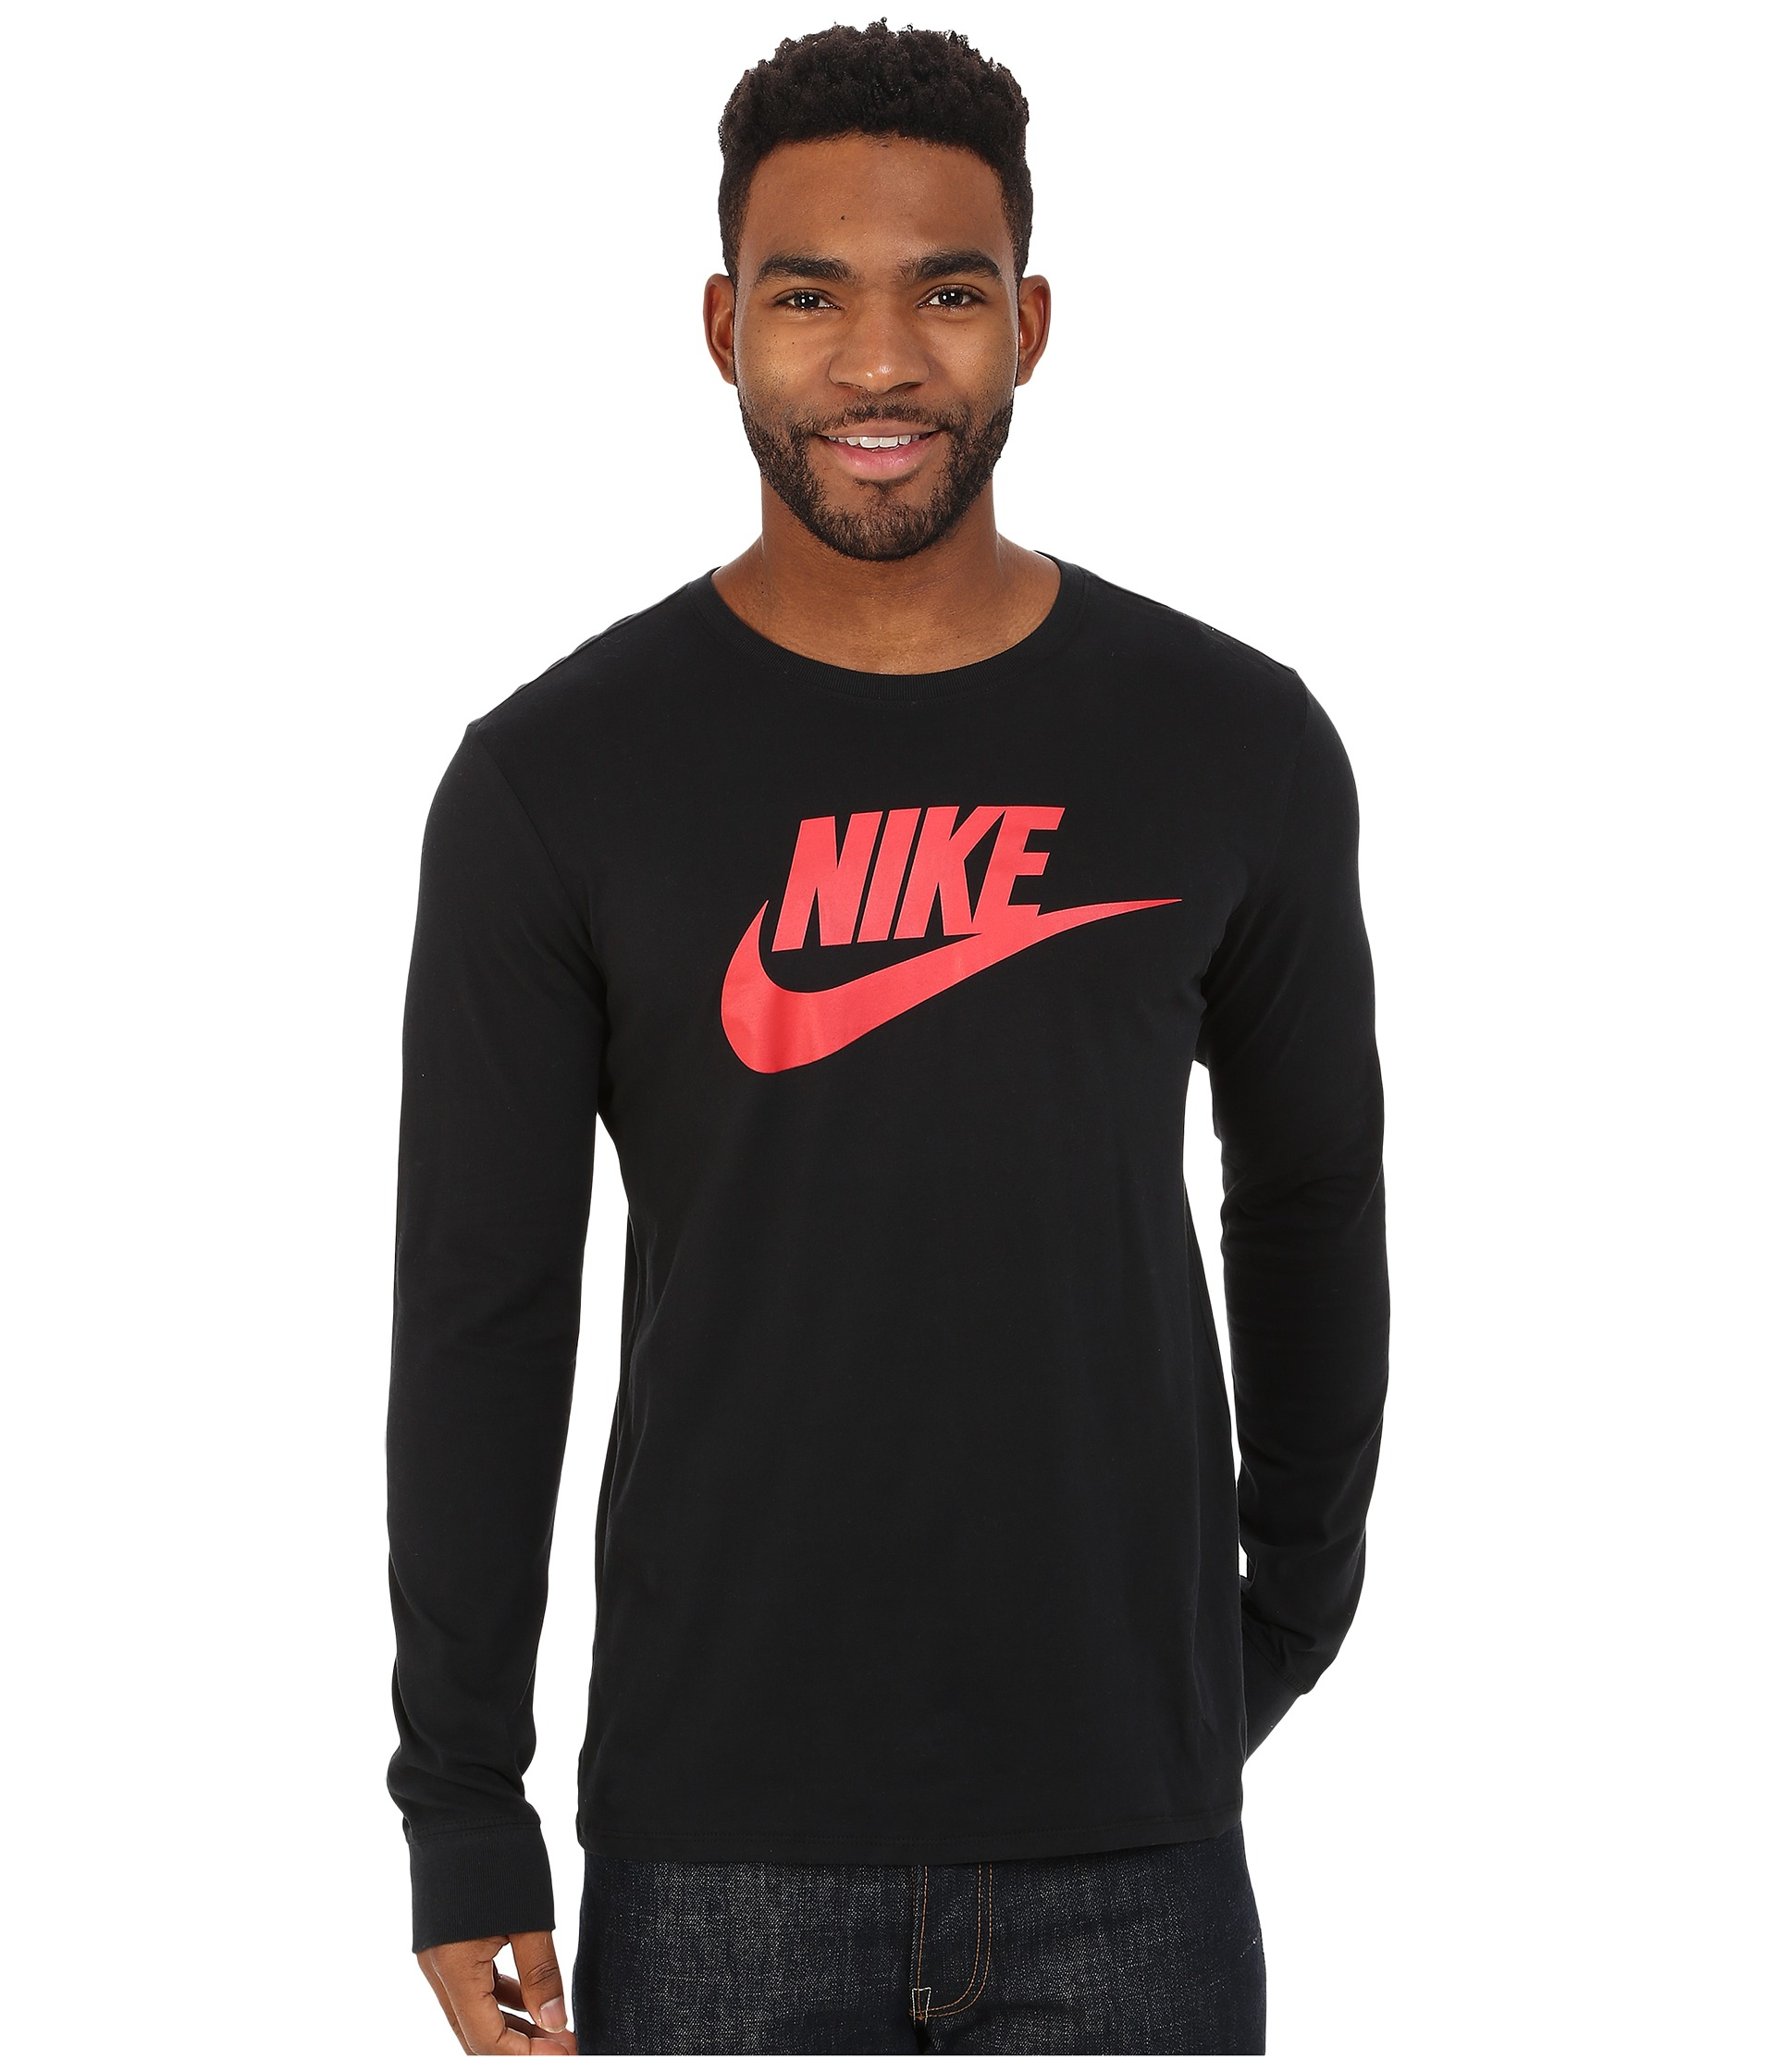 2623d576 Nike Futura Icon Long Sleeve Tee in Black for Men - Lyst